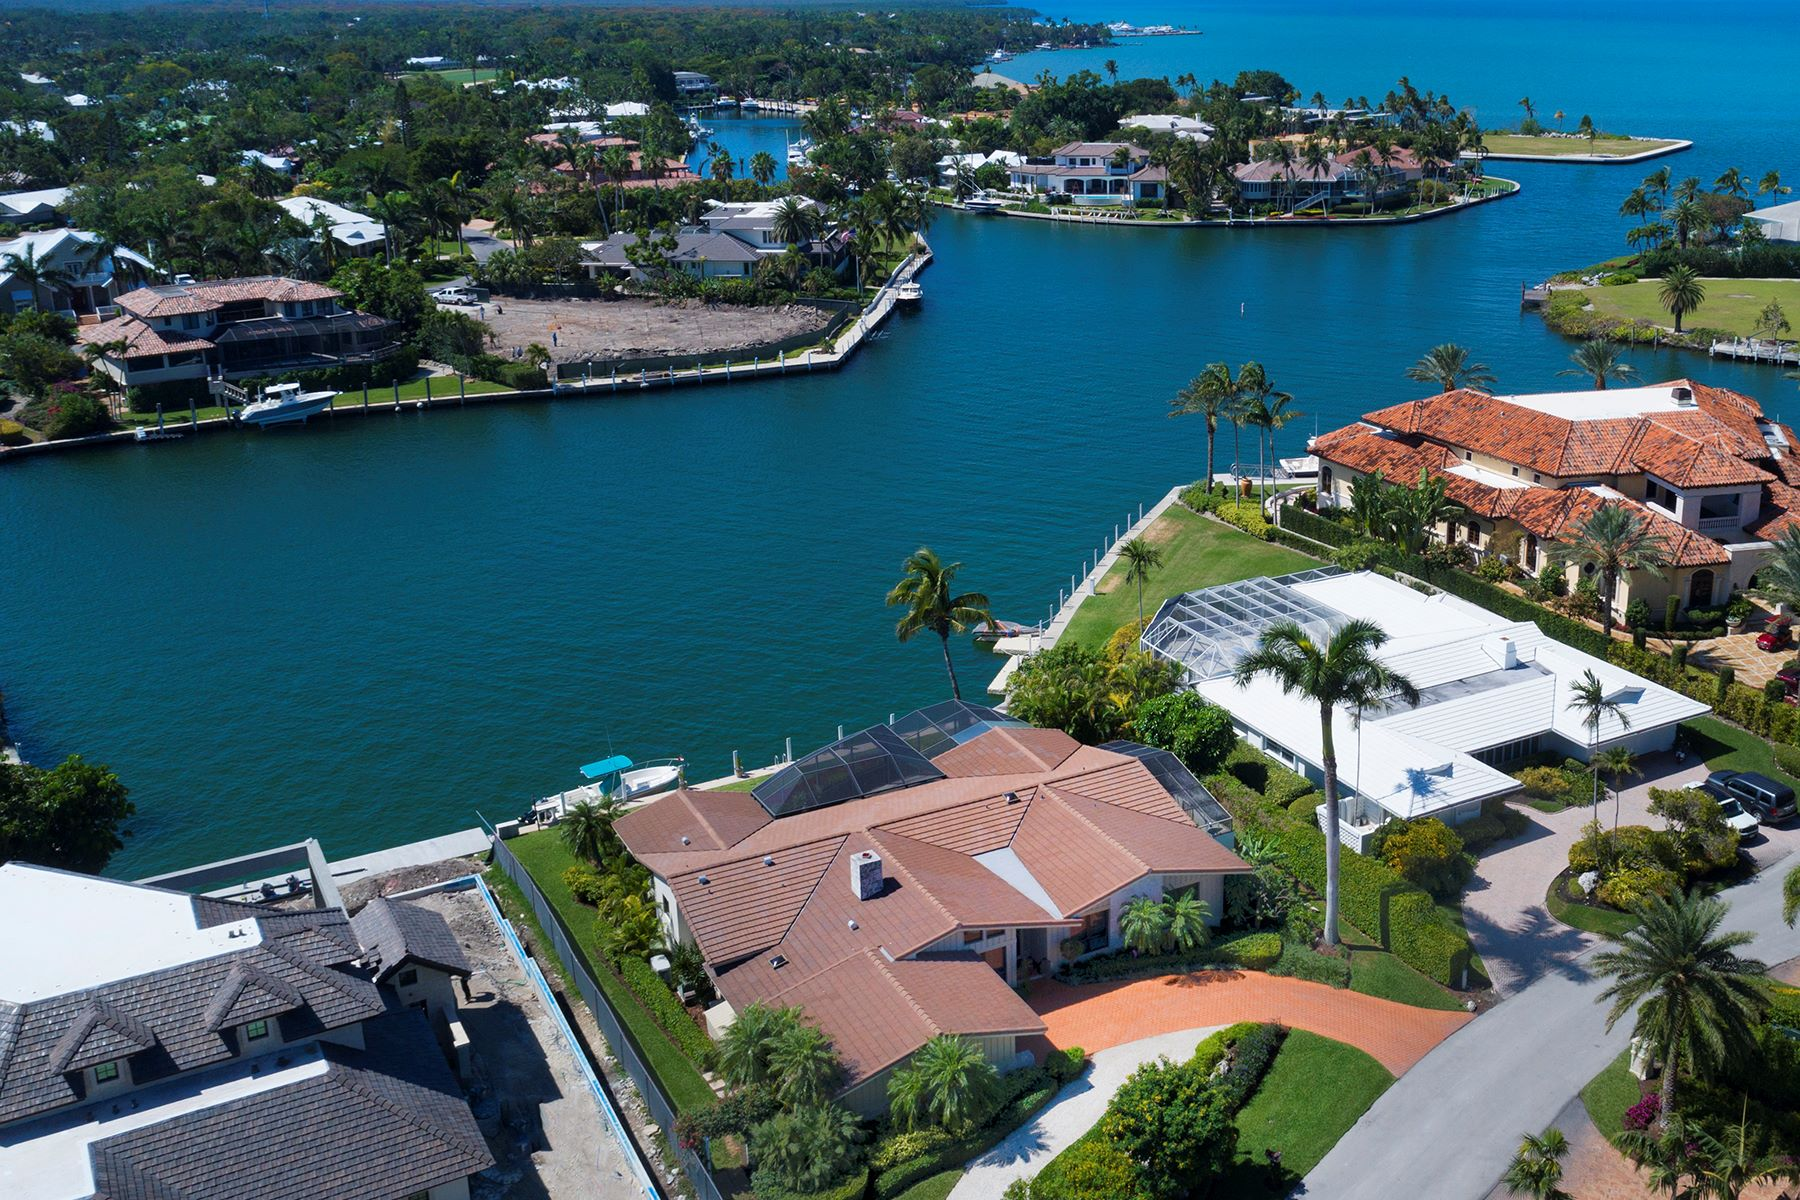 Single Family Home for Sale at Timeless Canalfront Home at Ocean Reef 3 Knoll Lane, Ocean Reef Community, Key Largo, Florida, 33037 United States